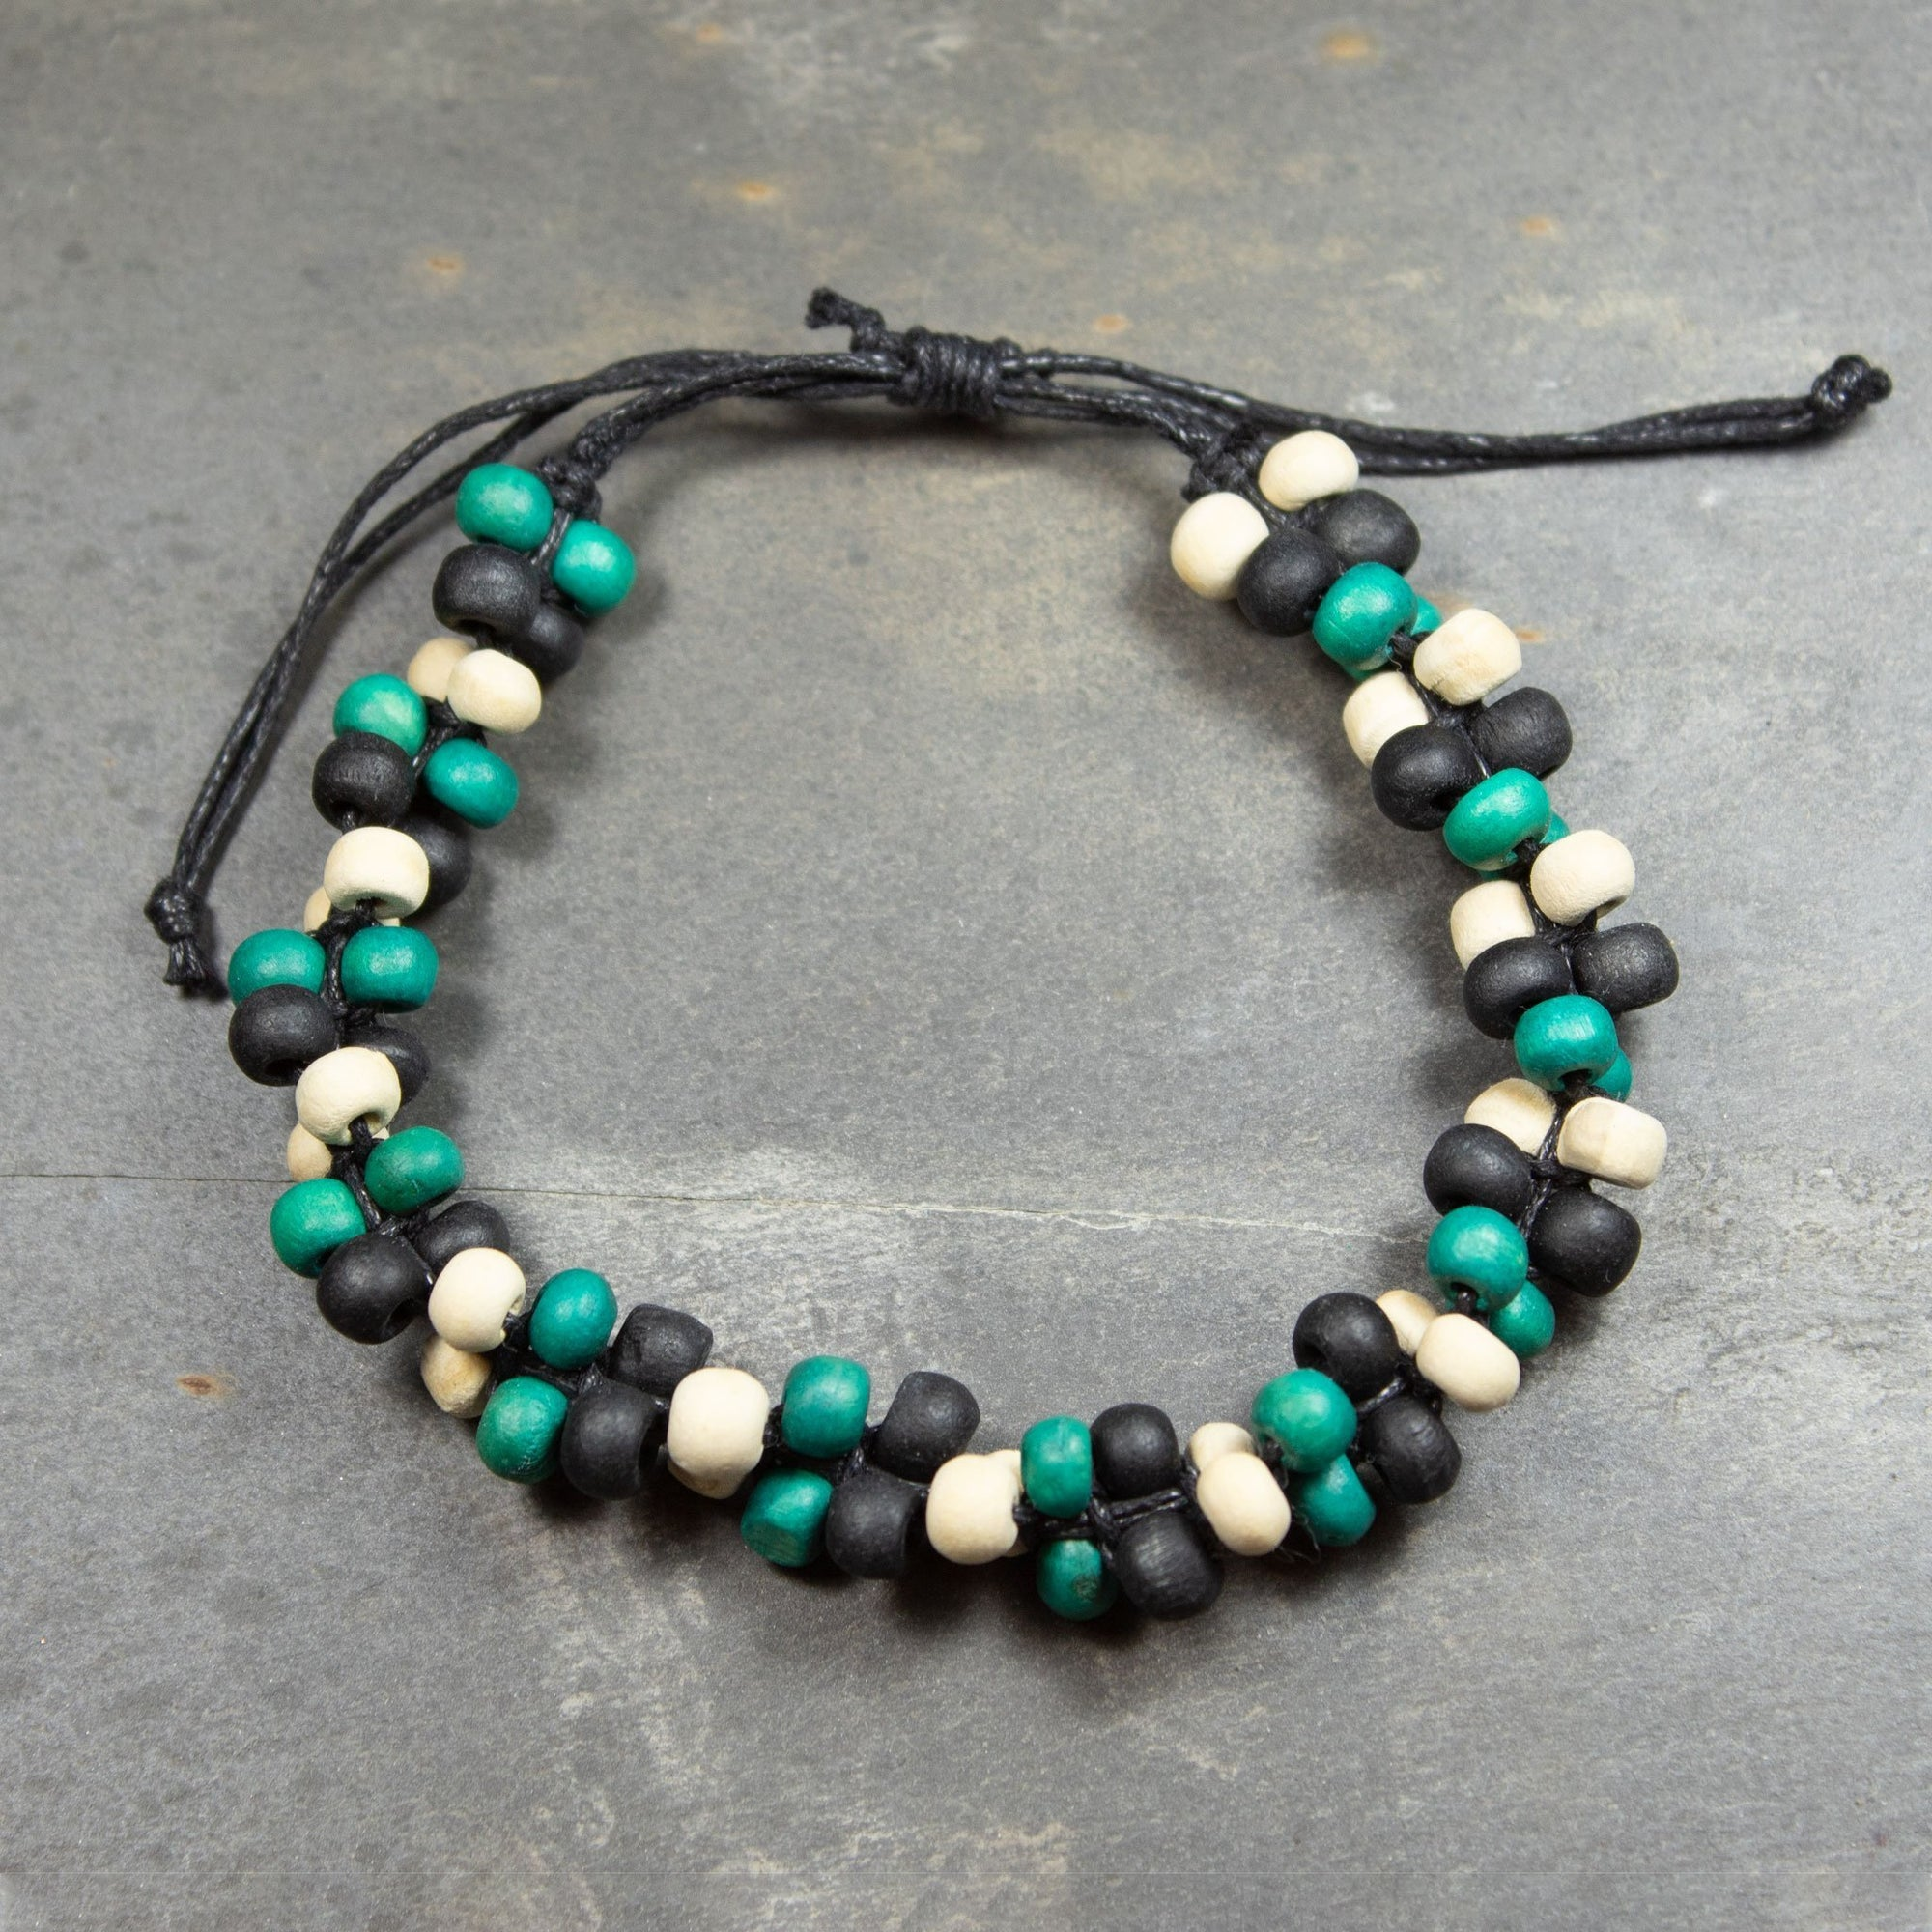 Green, Black & Green Wooden Bead Bracelet | Bracelet - The Naughty Shrew